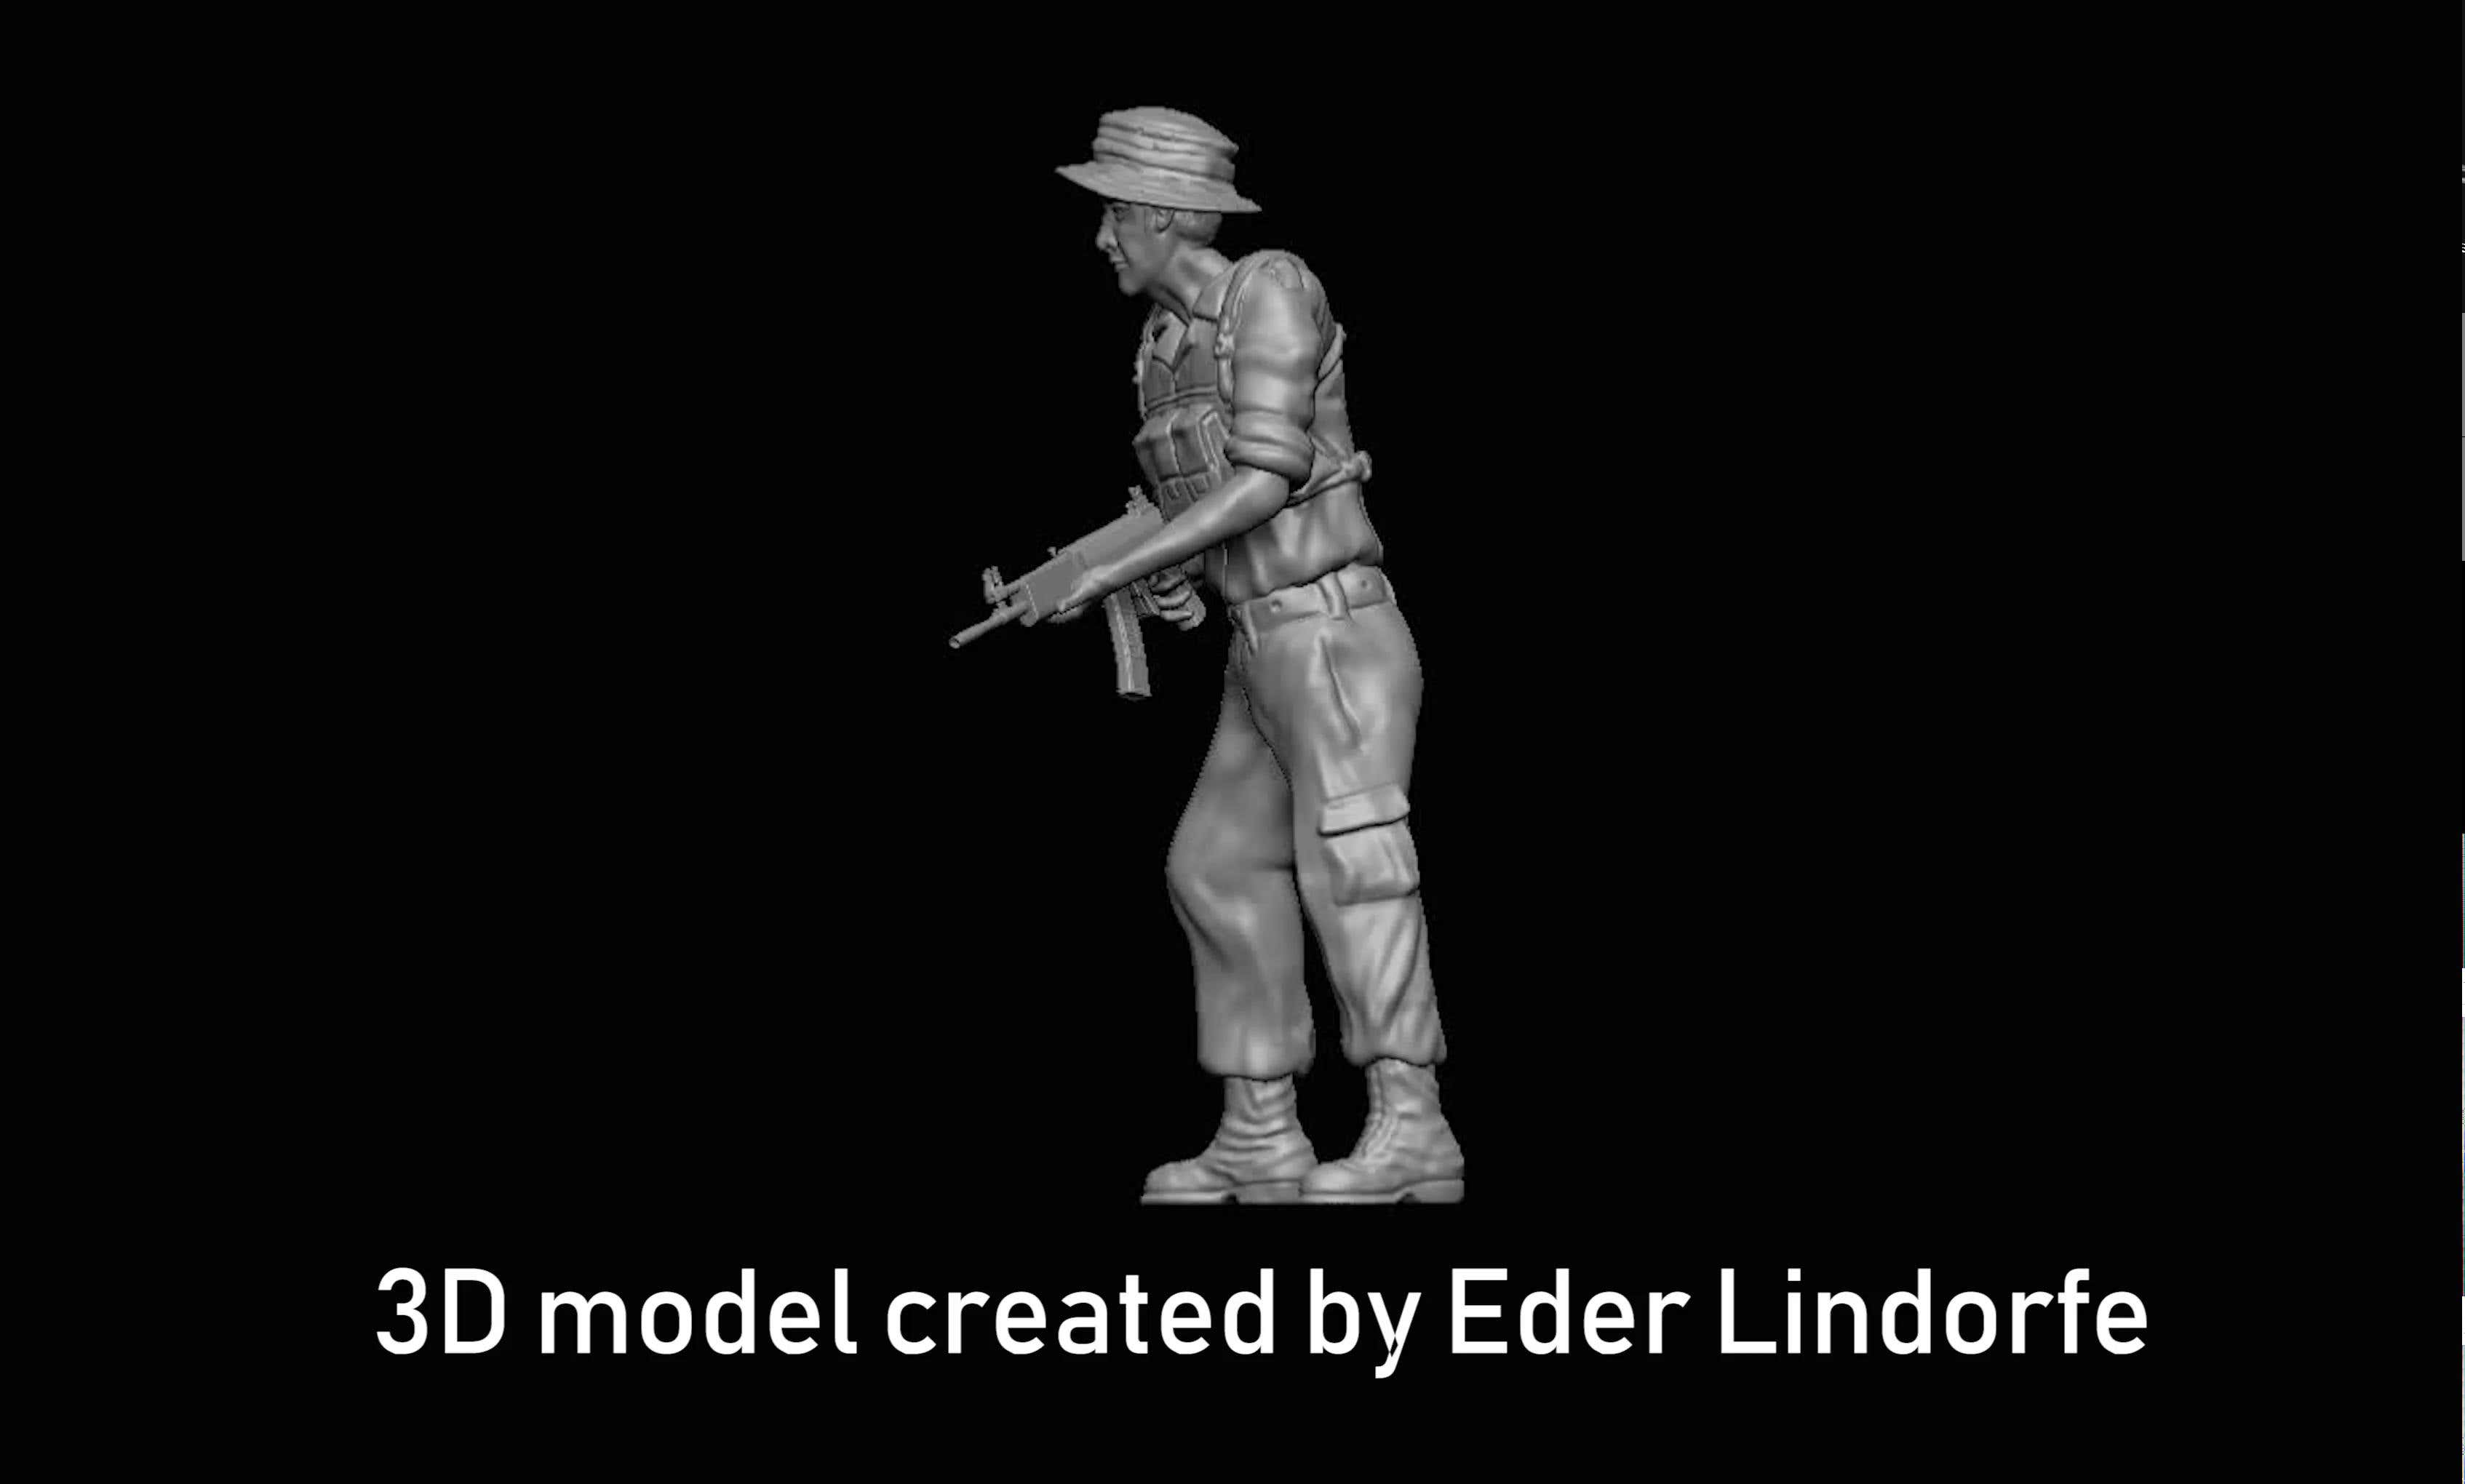 South African Defense Force Troop 3D model for 3D printing